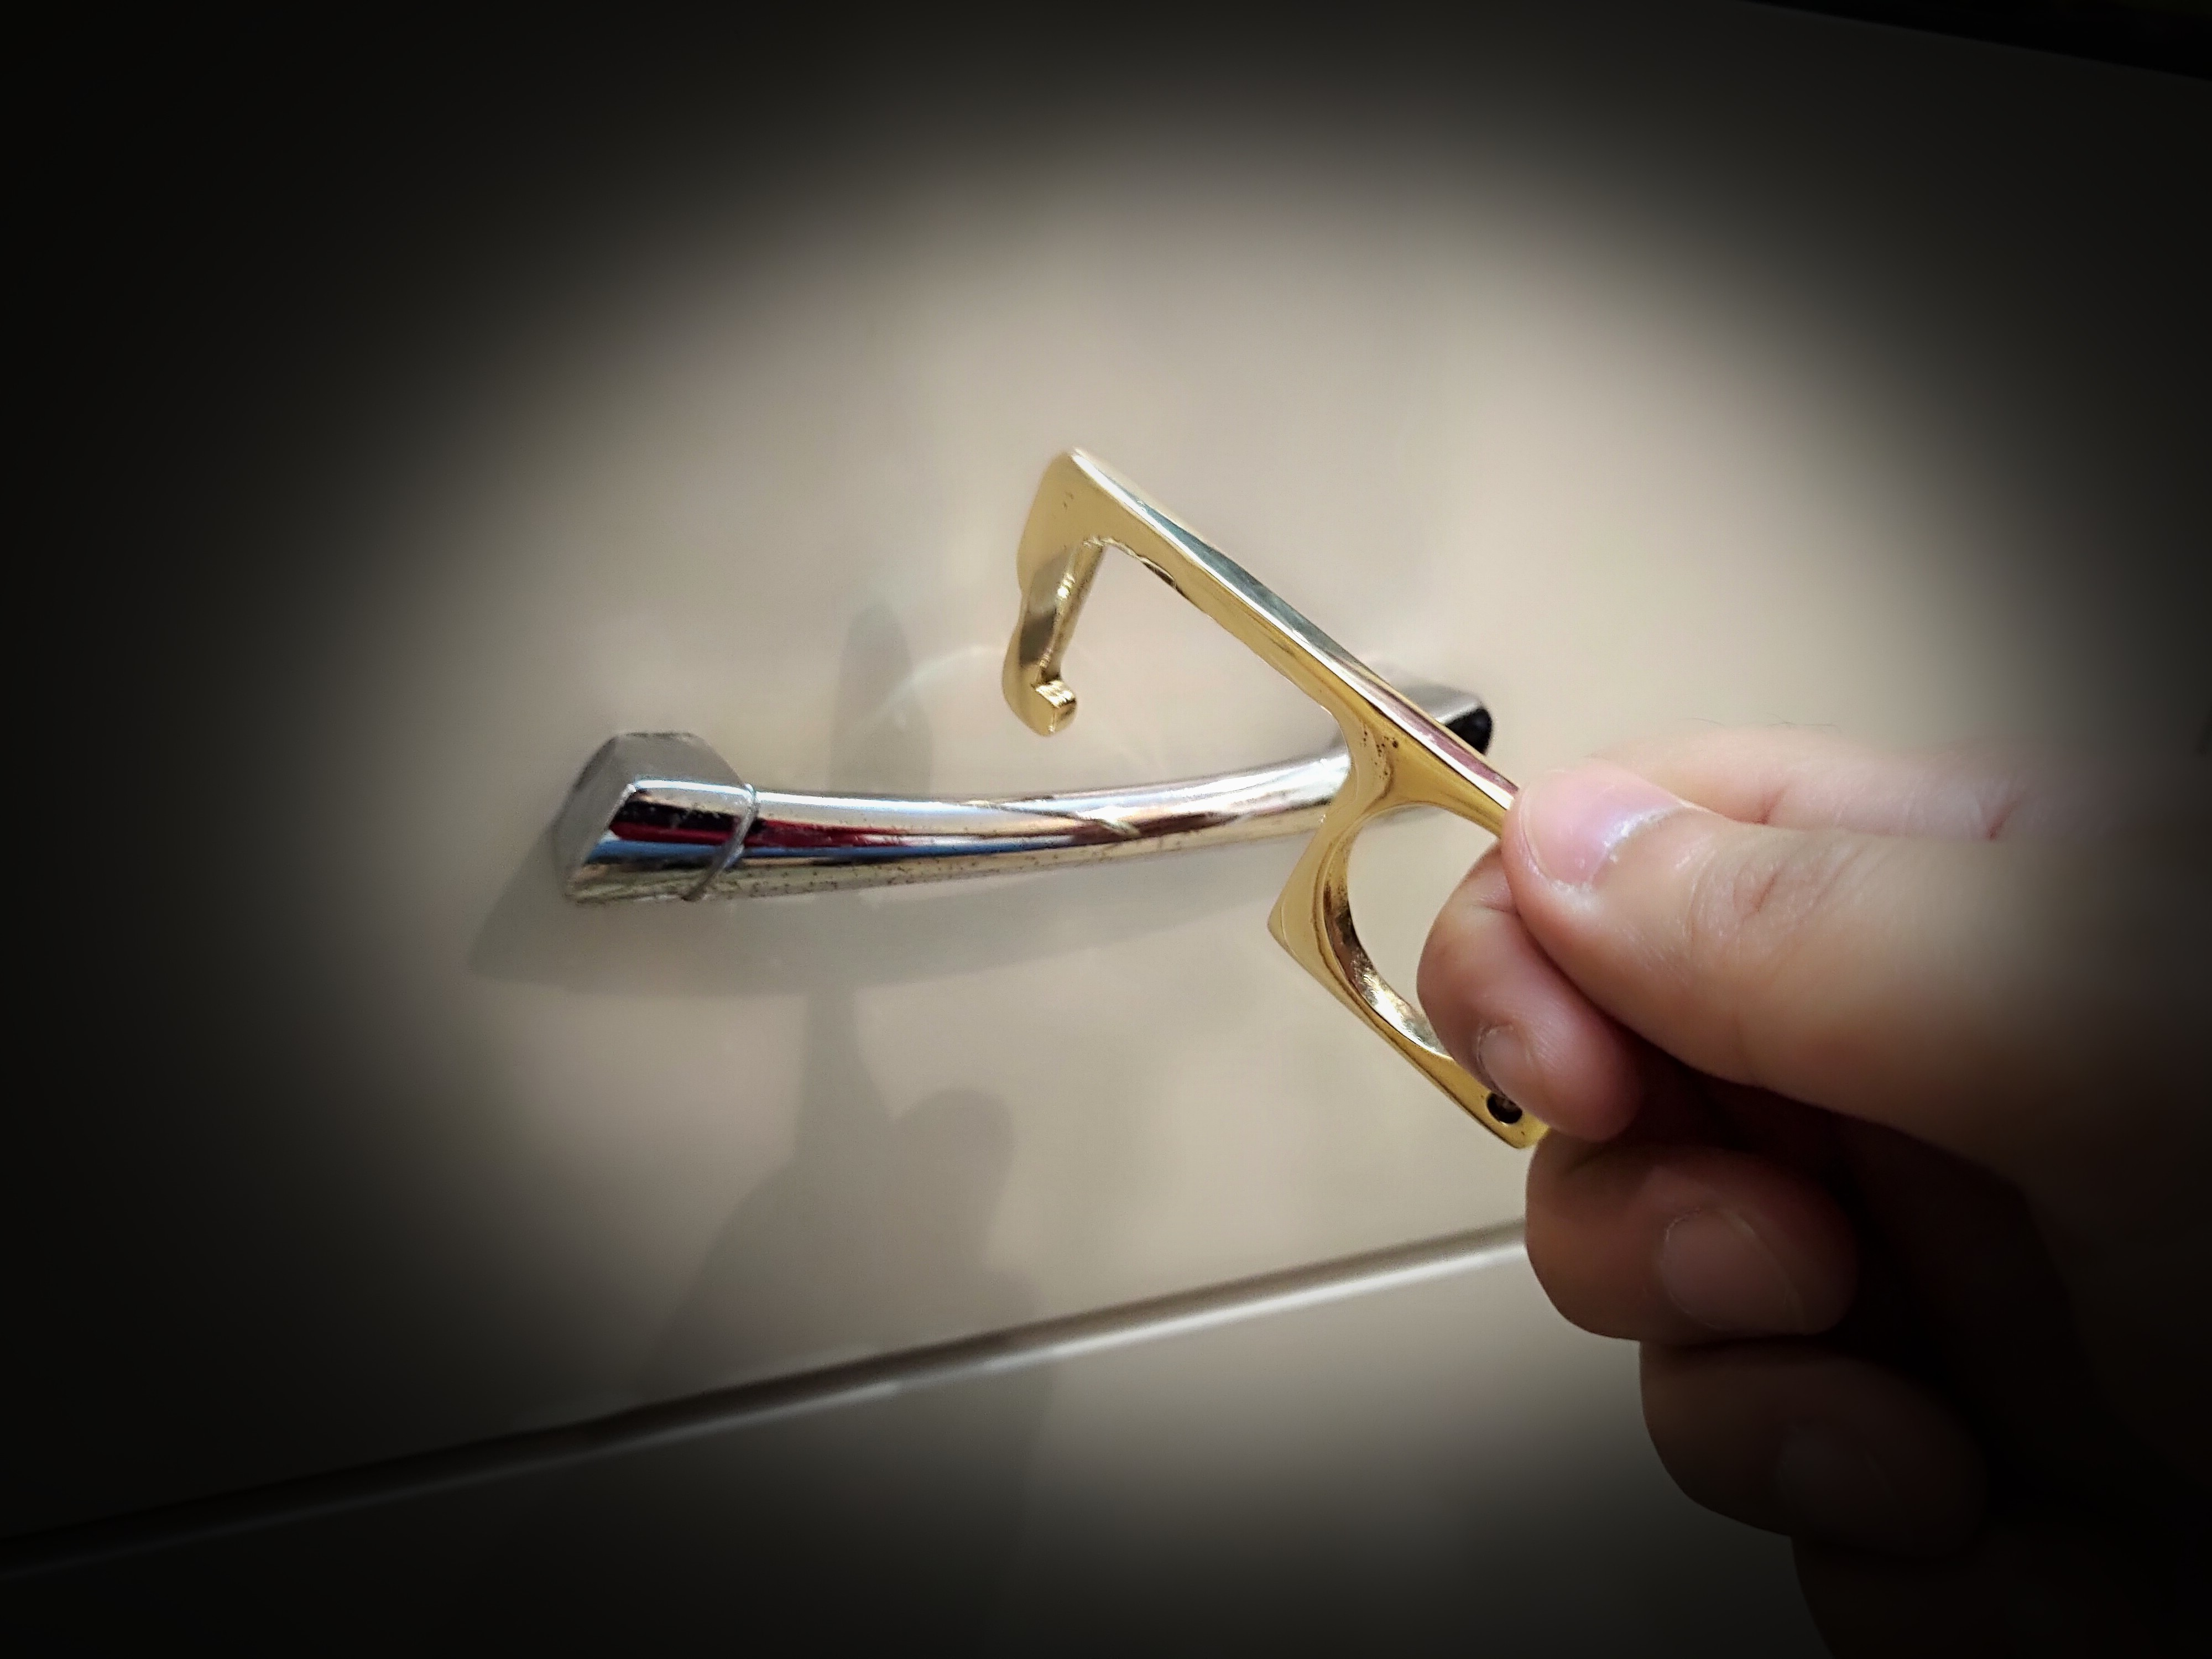 Rope Style Pockee -Zero Touch Reusable Contactless Key Hands Safety To Open Door Bottle Opener Brass Keychain